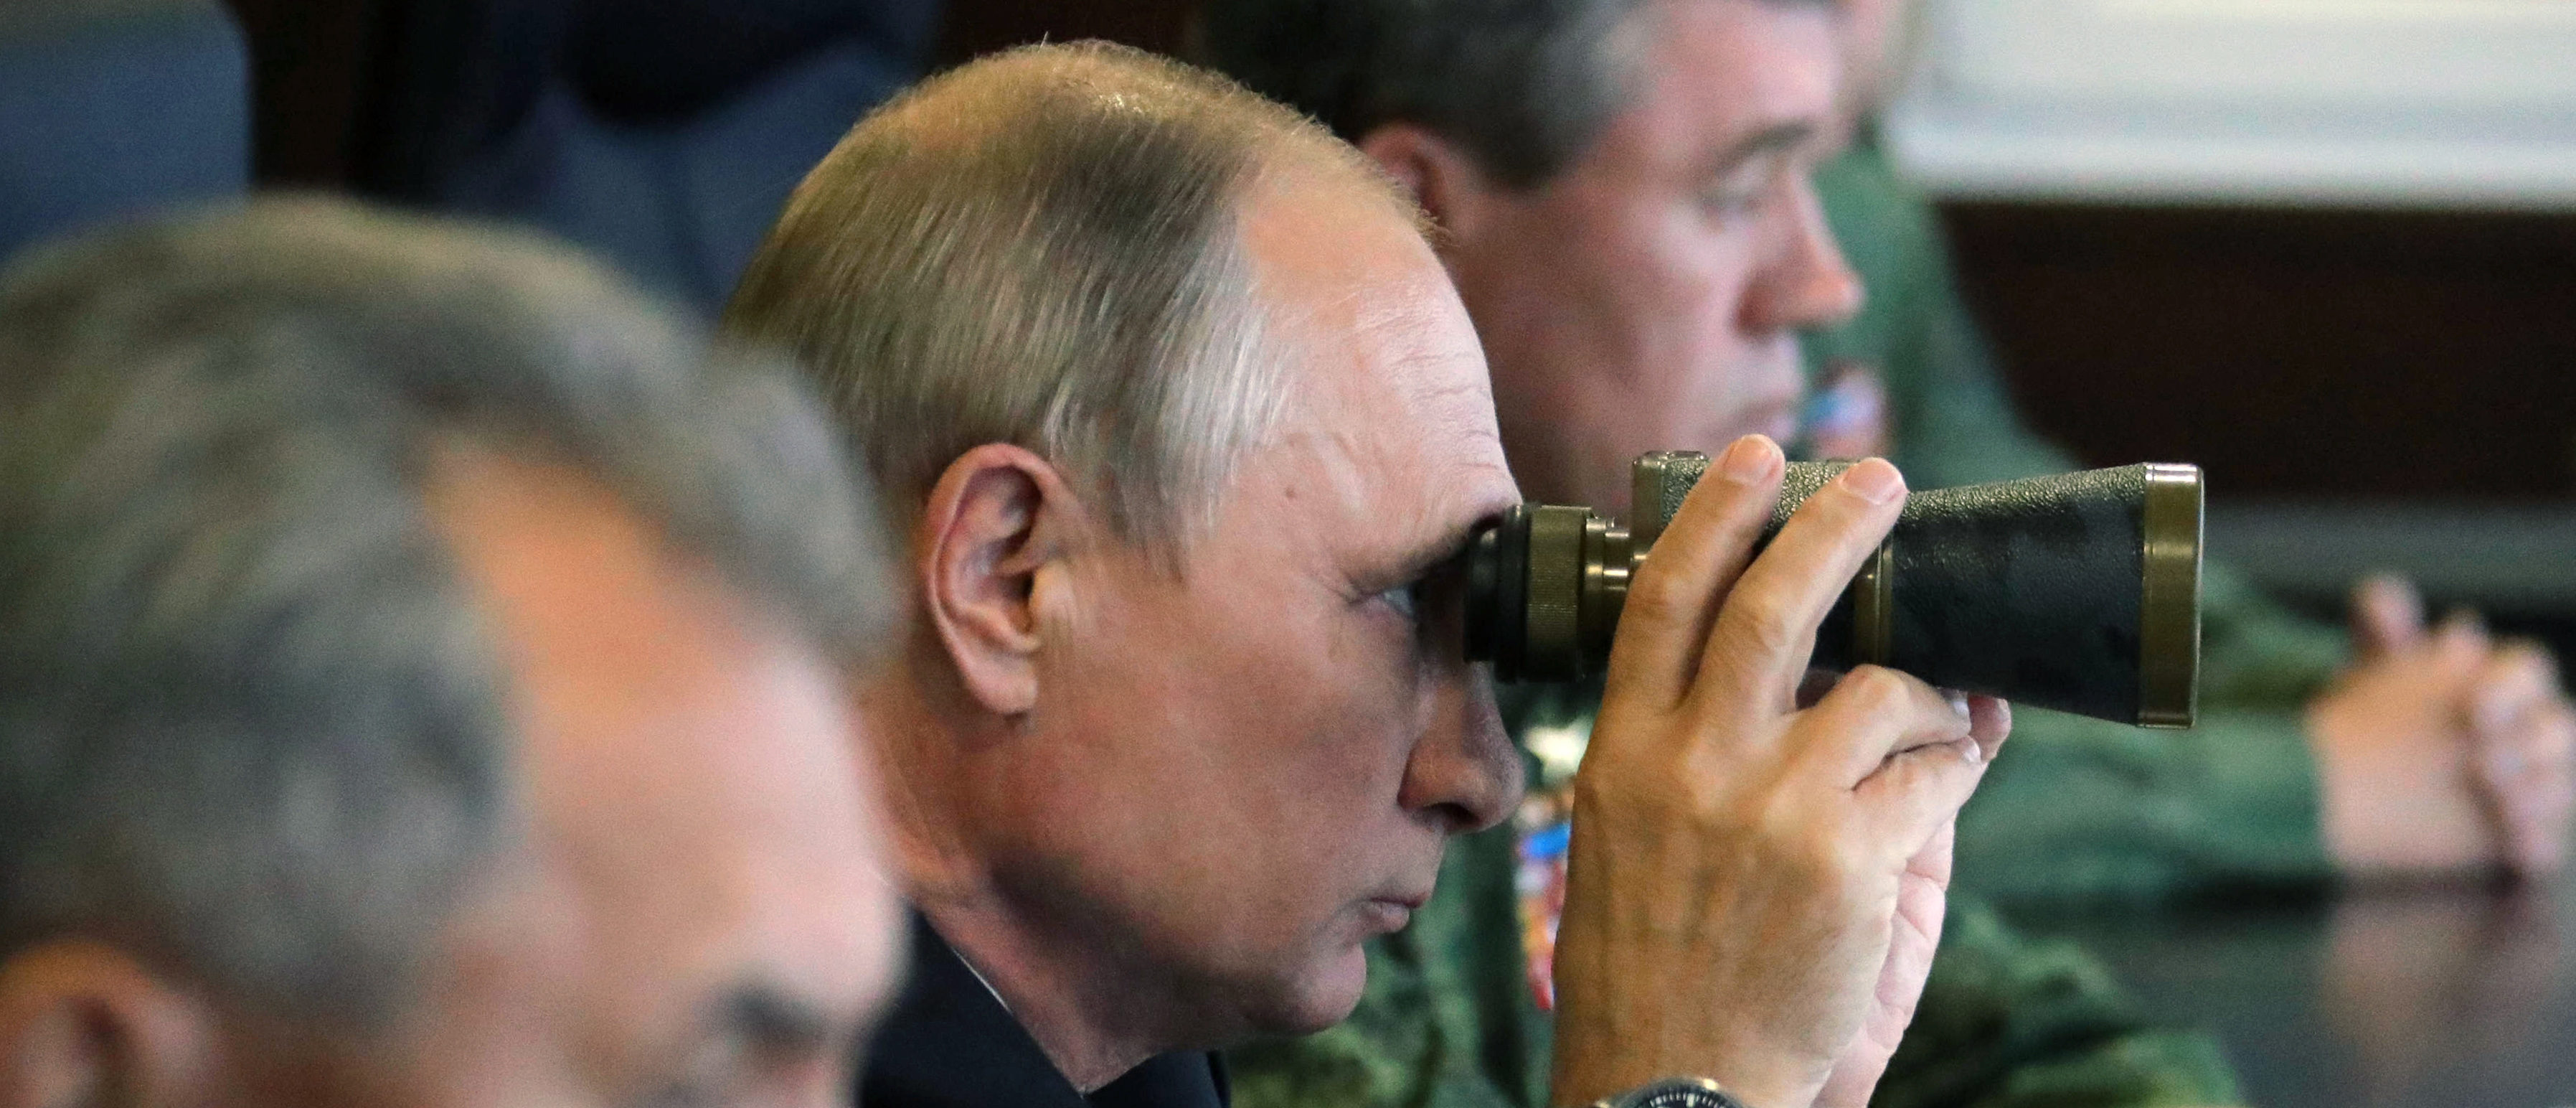 TOPSHOT - Russian President Vladimir Putin (C), accompanied by Defence Minister Sergei Shoigu (L), uses a pair of binoculars as he inspects the joint Zapad-2017 (West-2017) Russian military exercises with Belarus at the Luzhsky training ground in the Leningrad region on September 18, 2017. (Photo by Mikhail KLIMENTYEV / SPUTNIK / AFP) (Photo by MIKHAIL KLIMENTYEV/SPUTNIK/AFP via Getty Images)